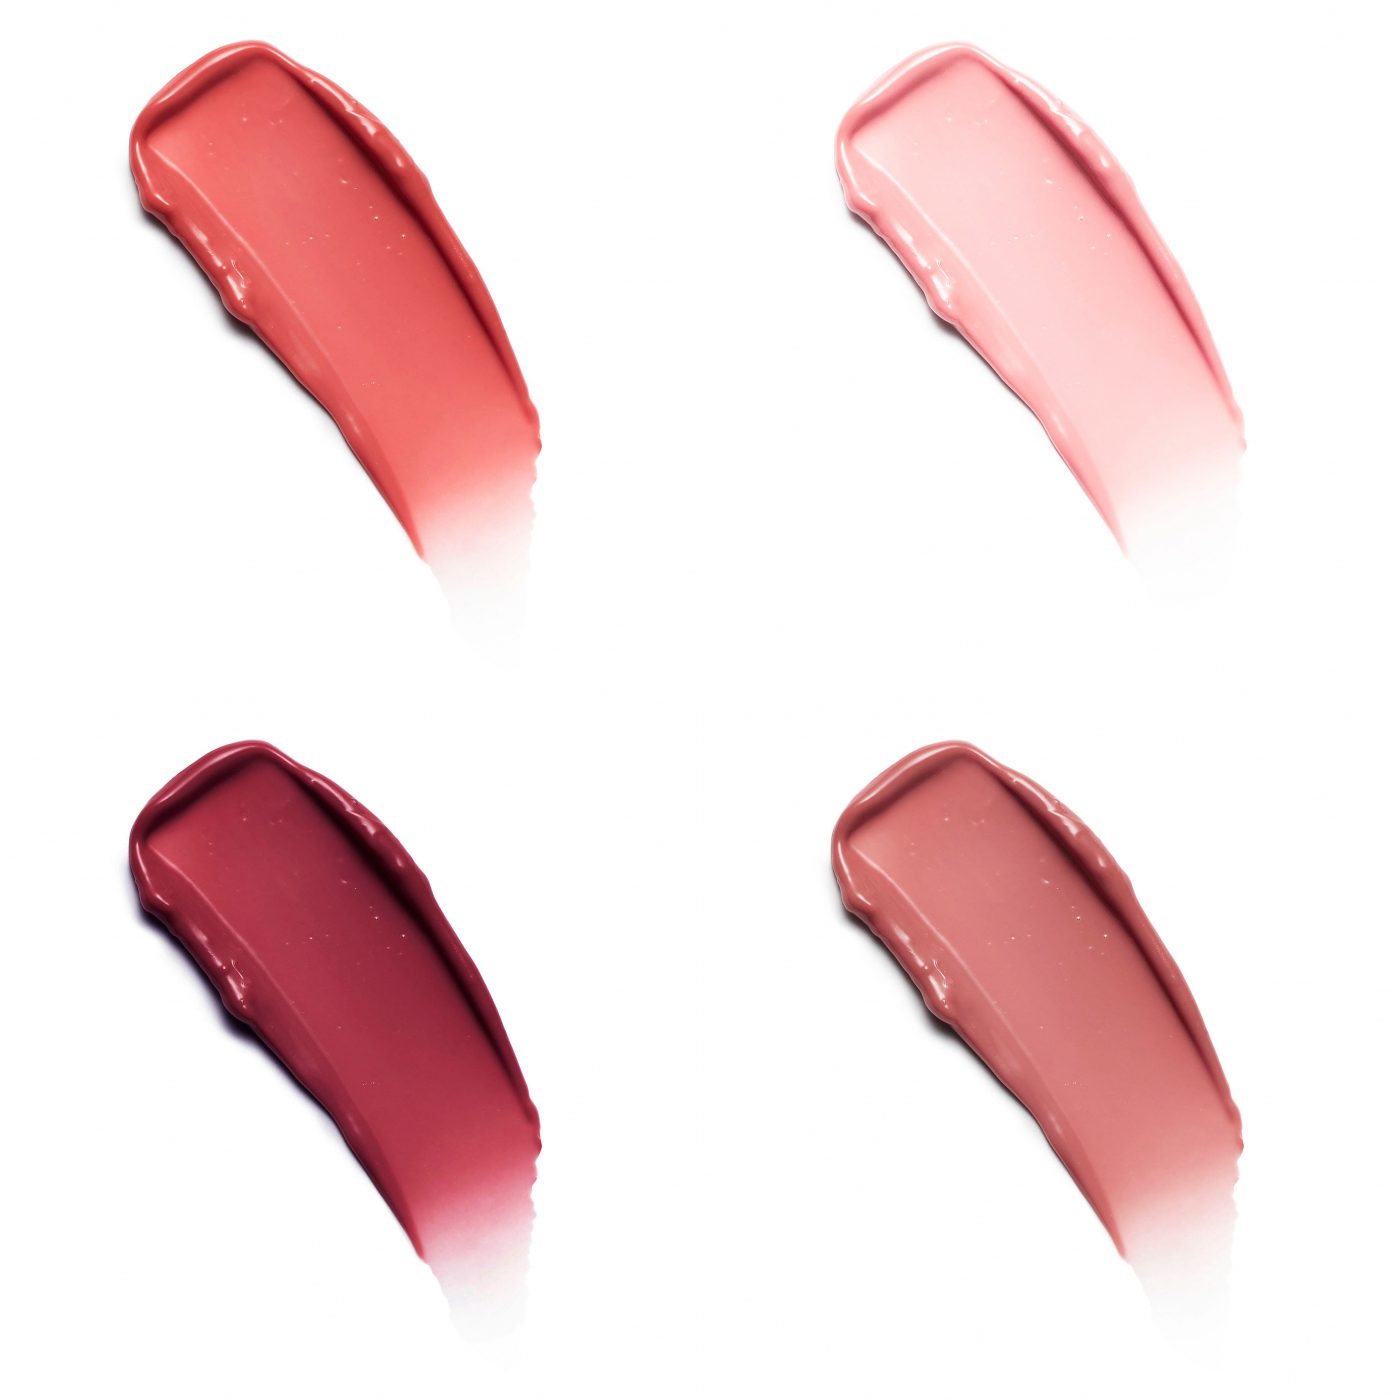 Tarte-Quench-Lip-Rescue_colori